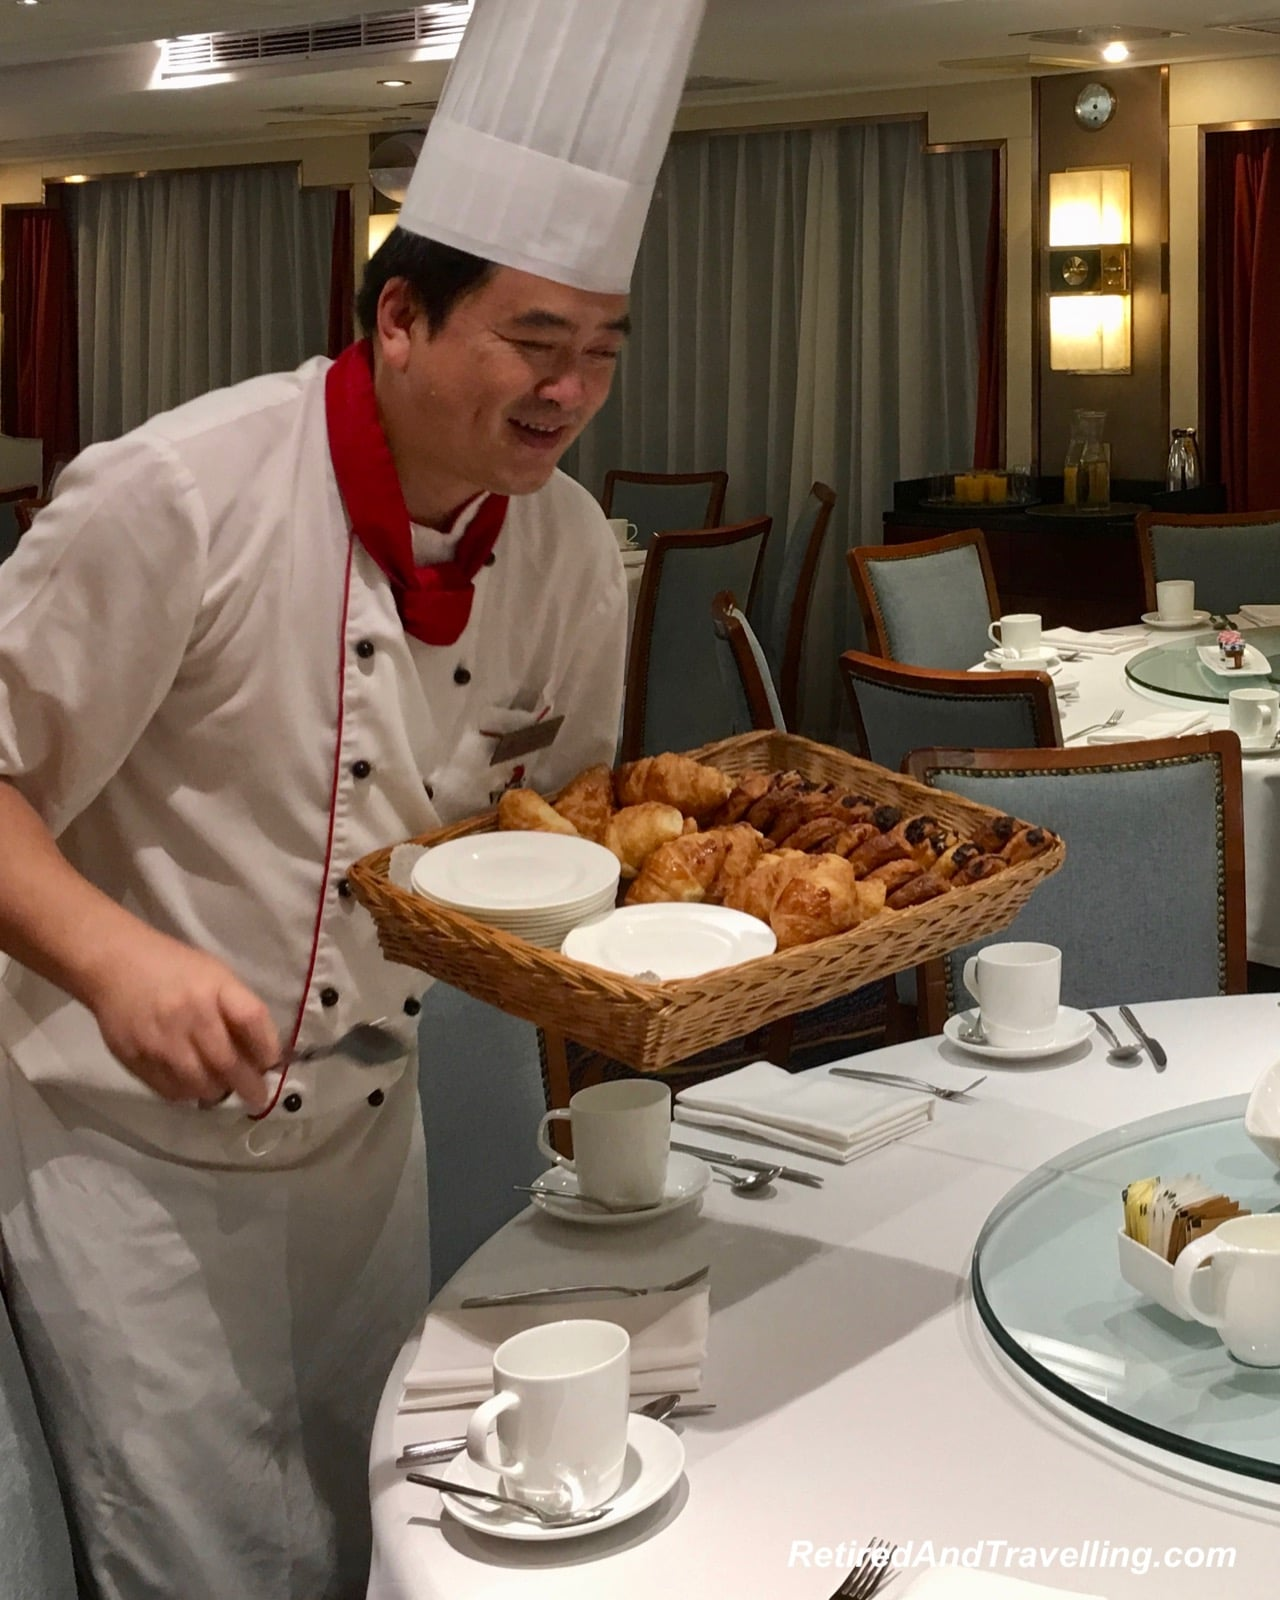 Viking Emerald Cruise Ship Food - Cruise The Yangtze River In China With Viking Cruises.jpg